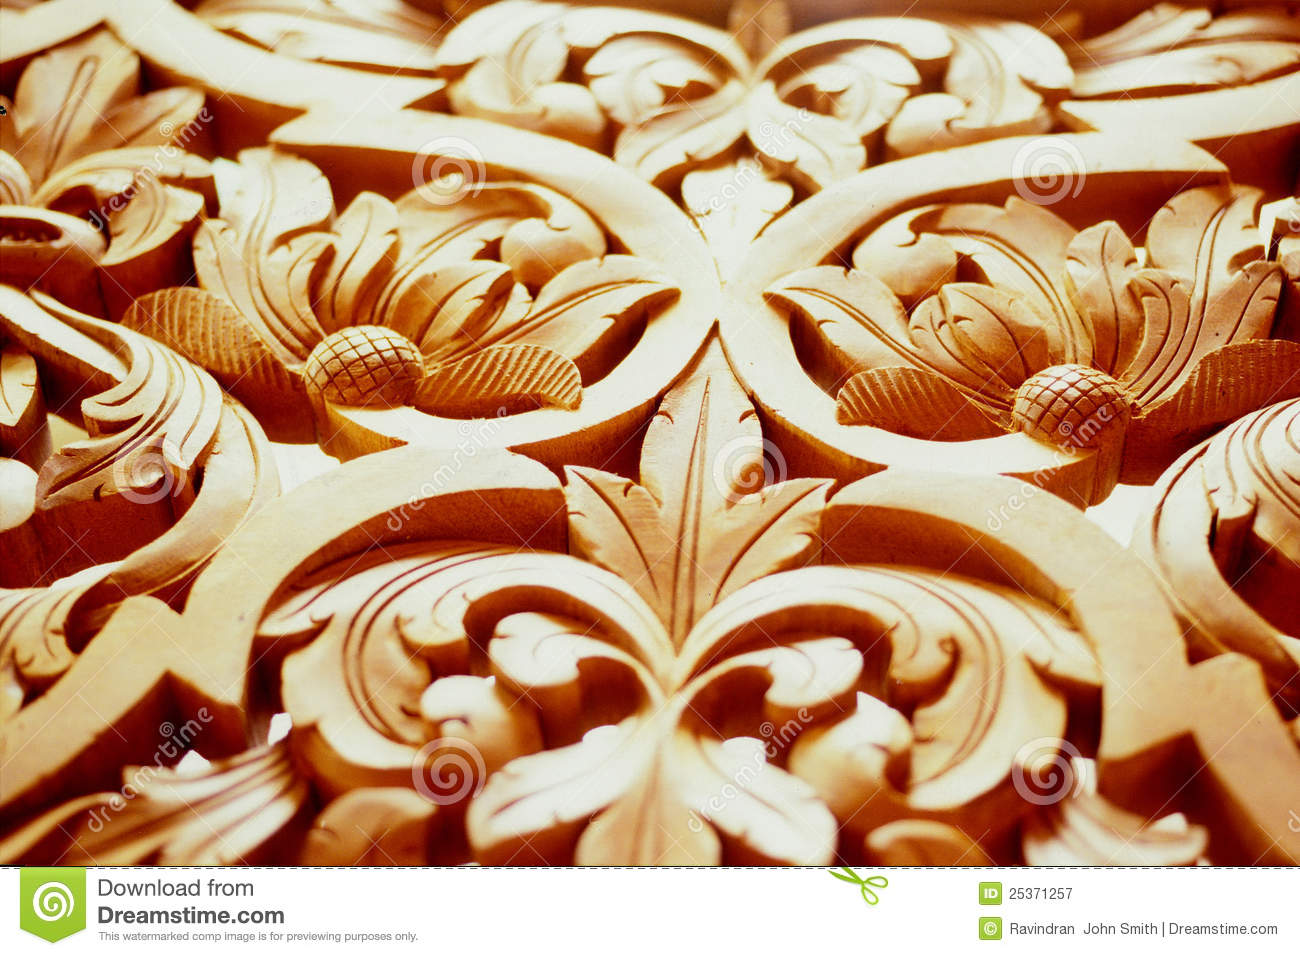 Download Wood Carving stock image. Image of carved, crafted, hand - 25371257